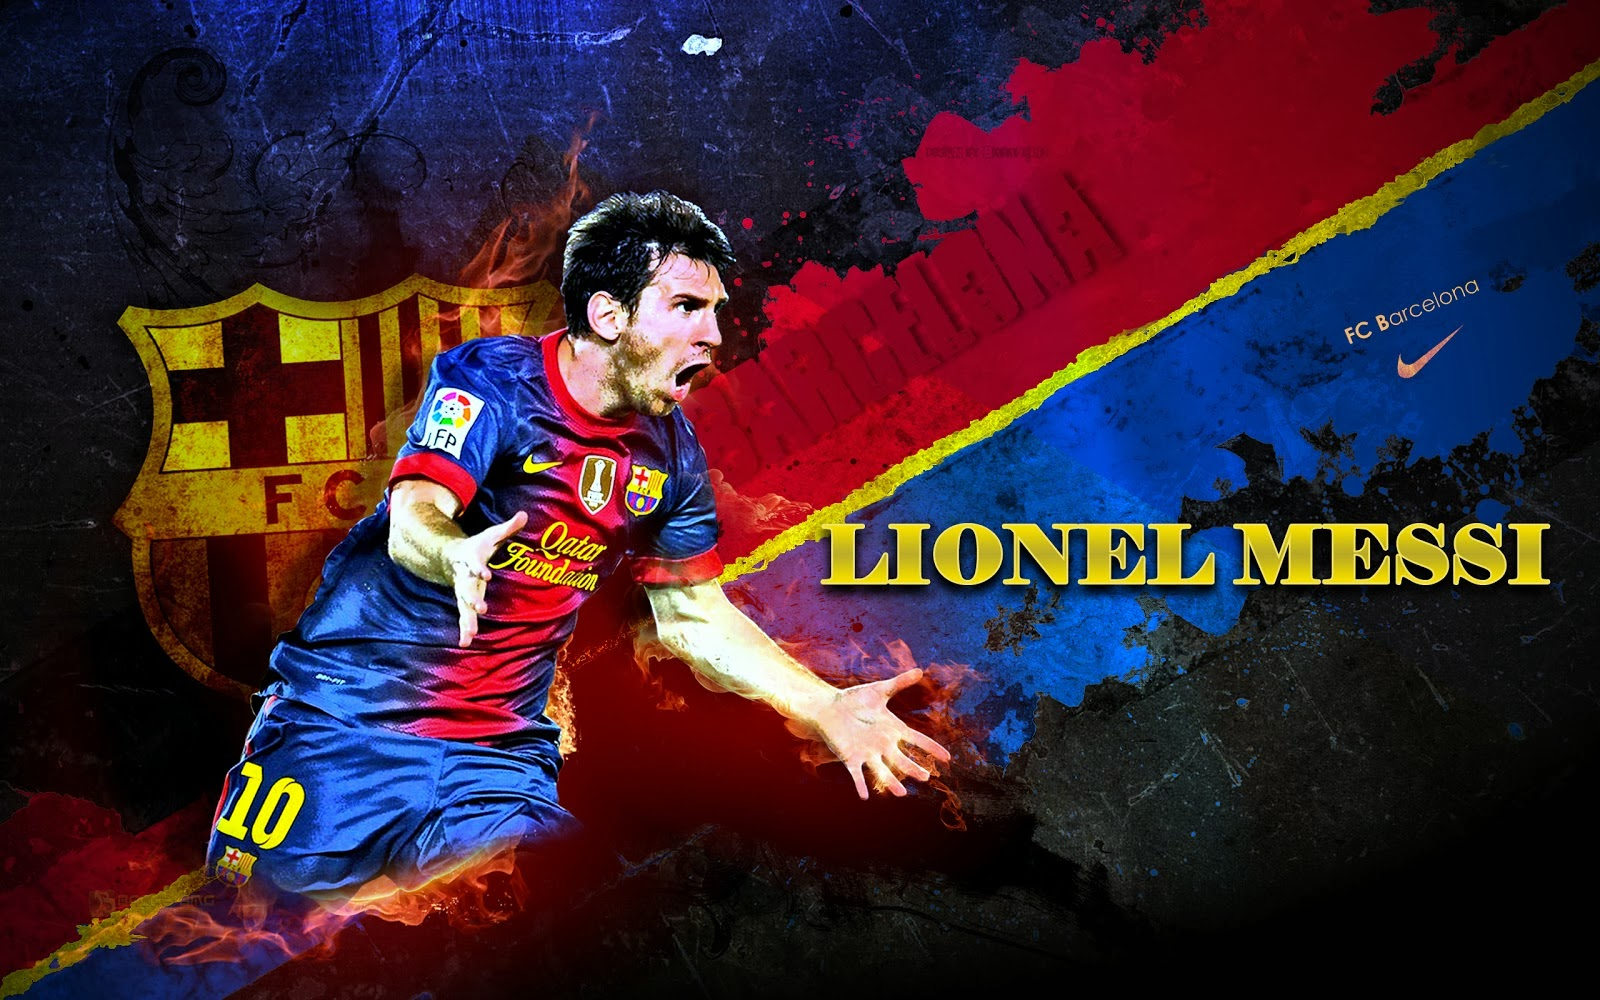 Lionel Messi Barcelona New Hd Wallpaper 2013 2014